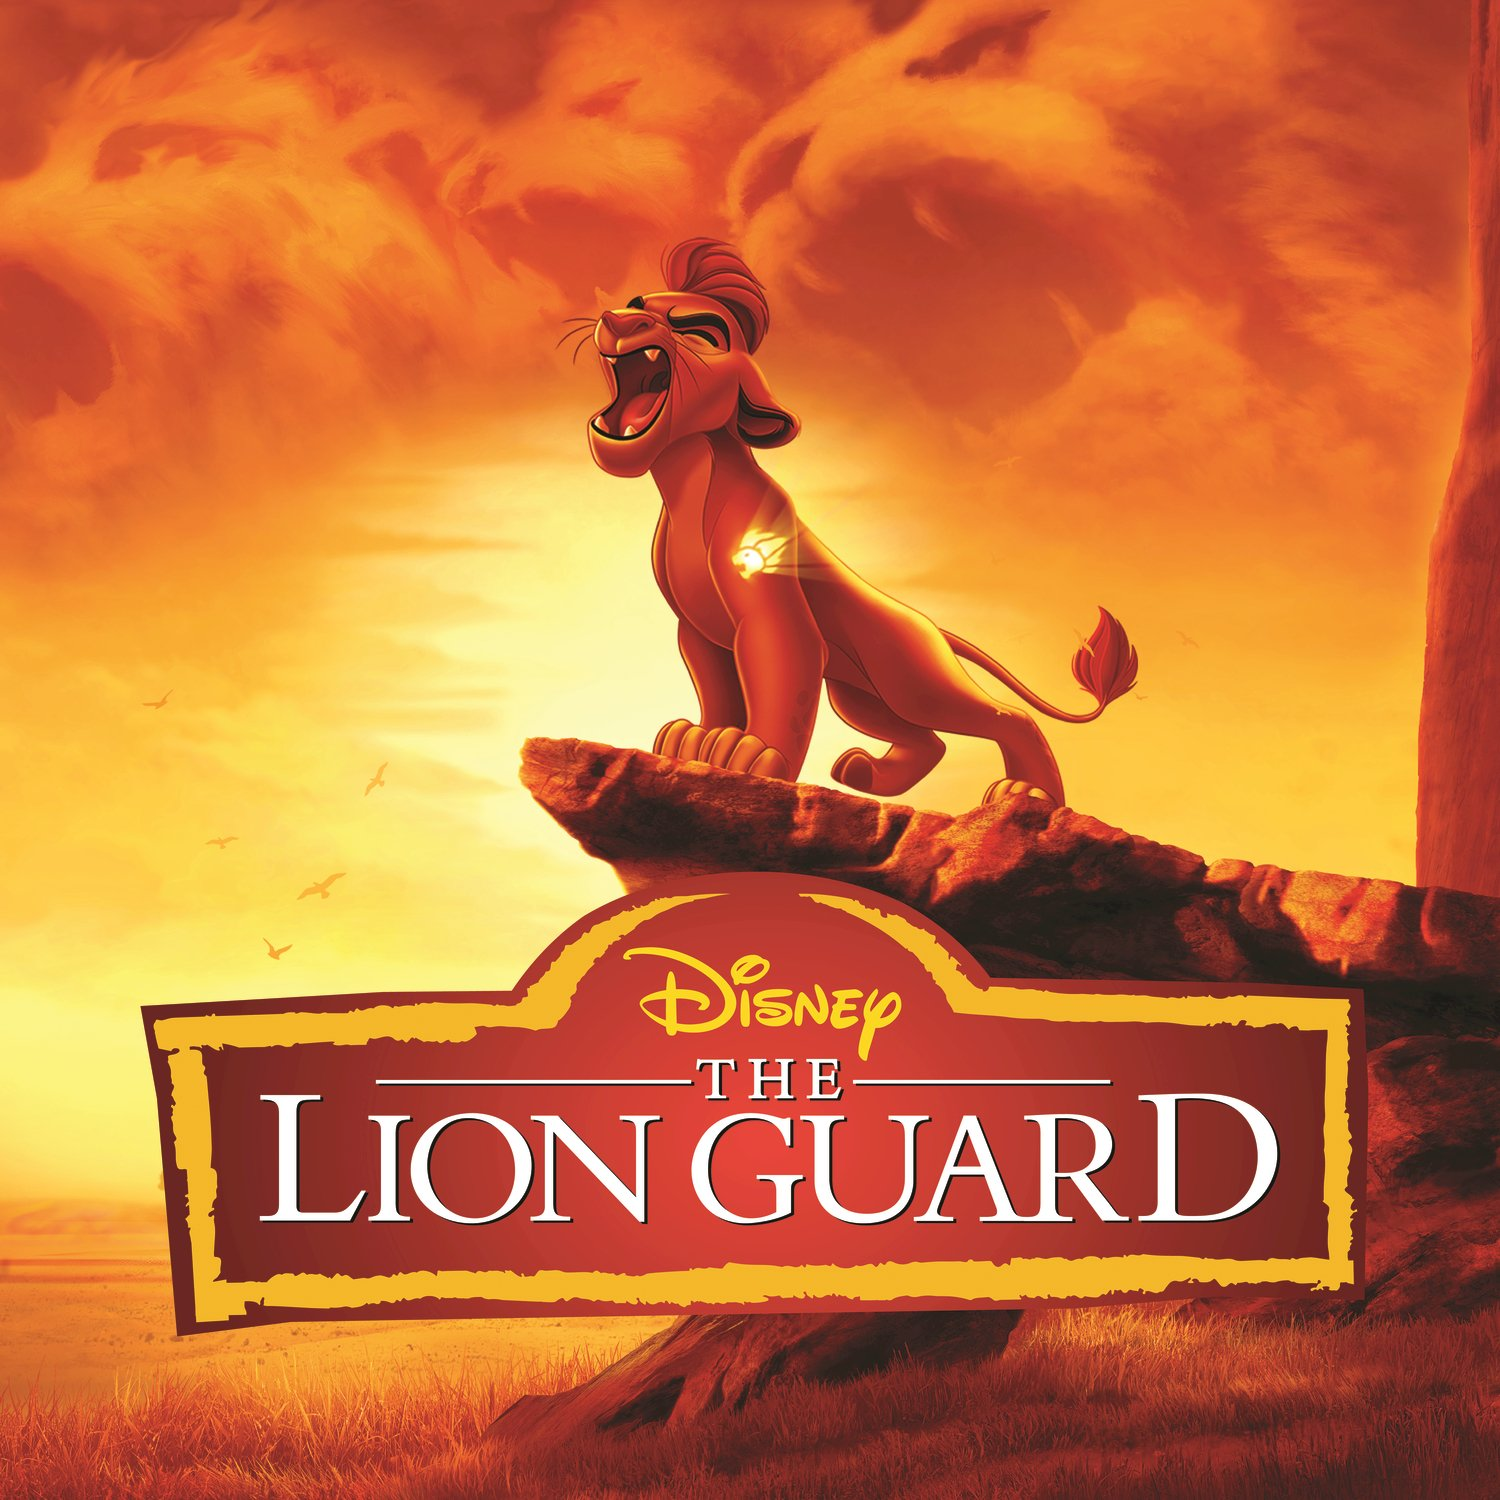 bande originale soundtrack ost score roi lion guard disney